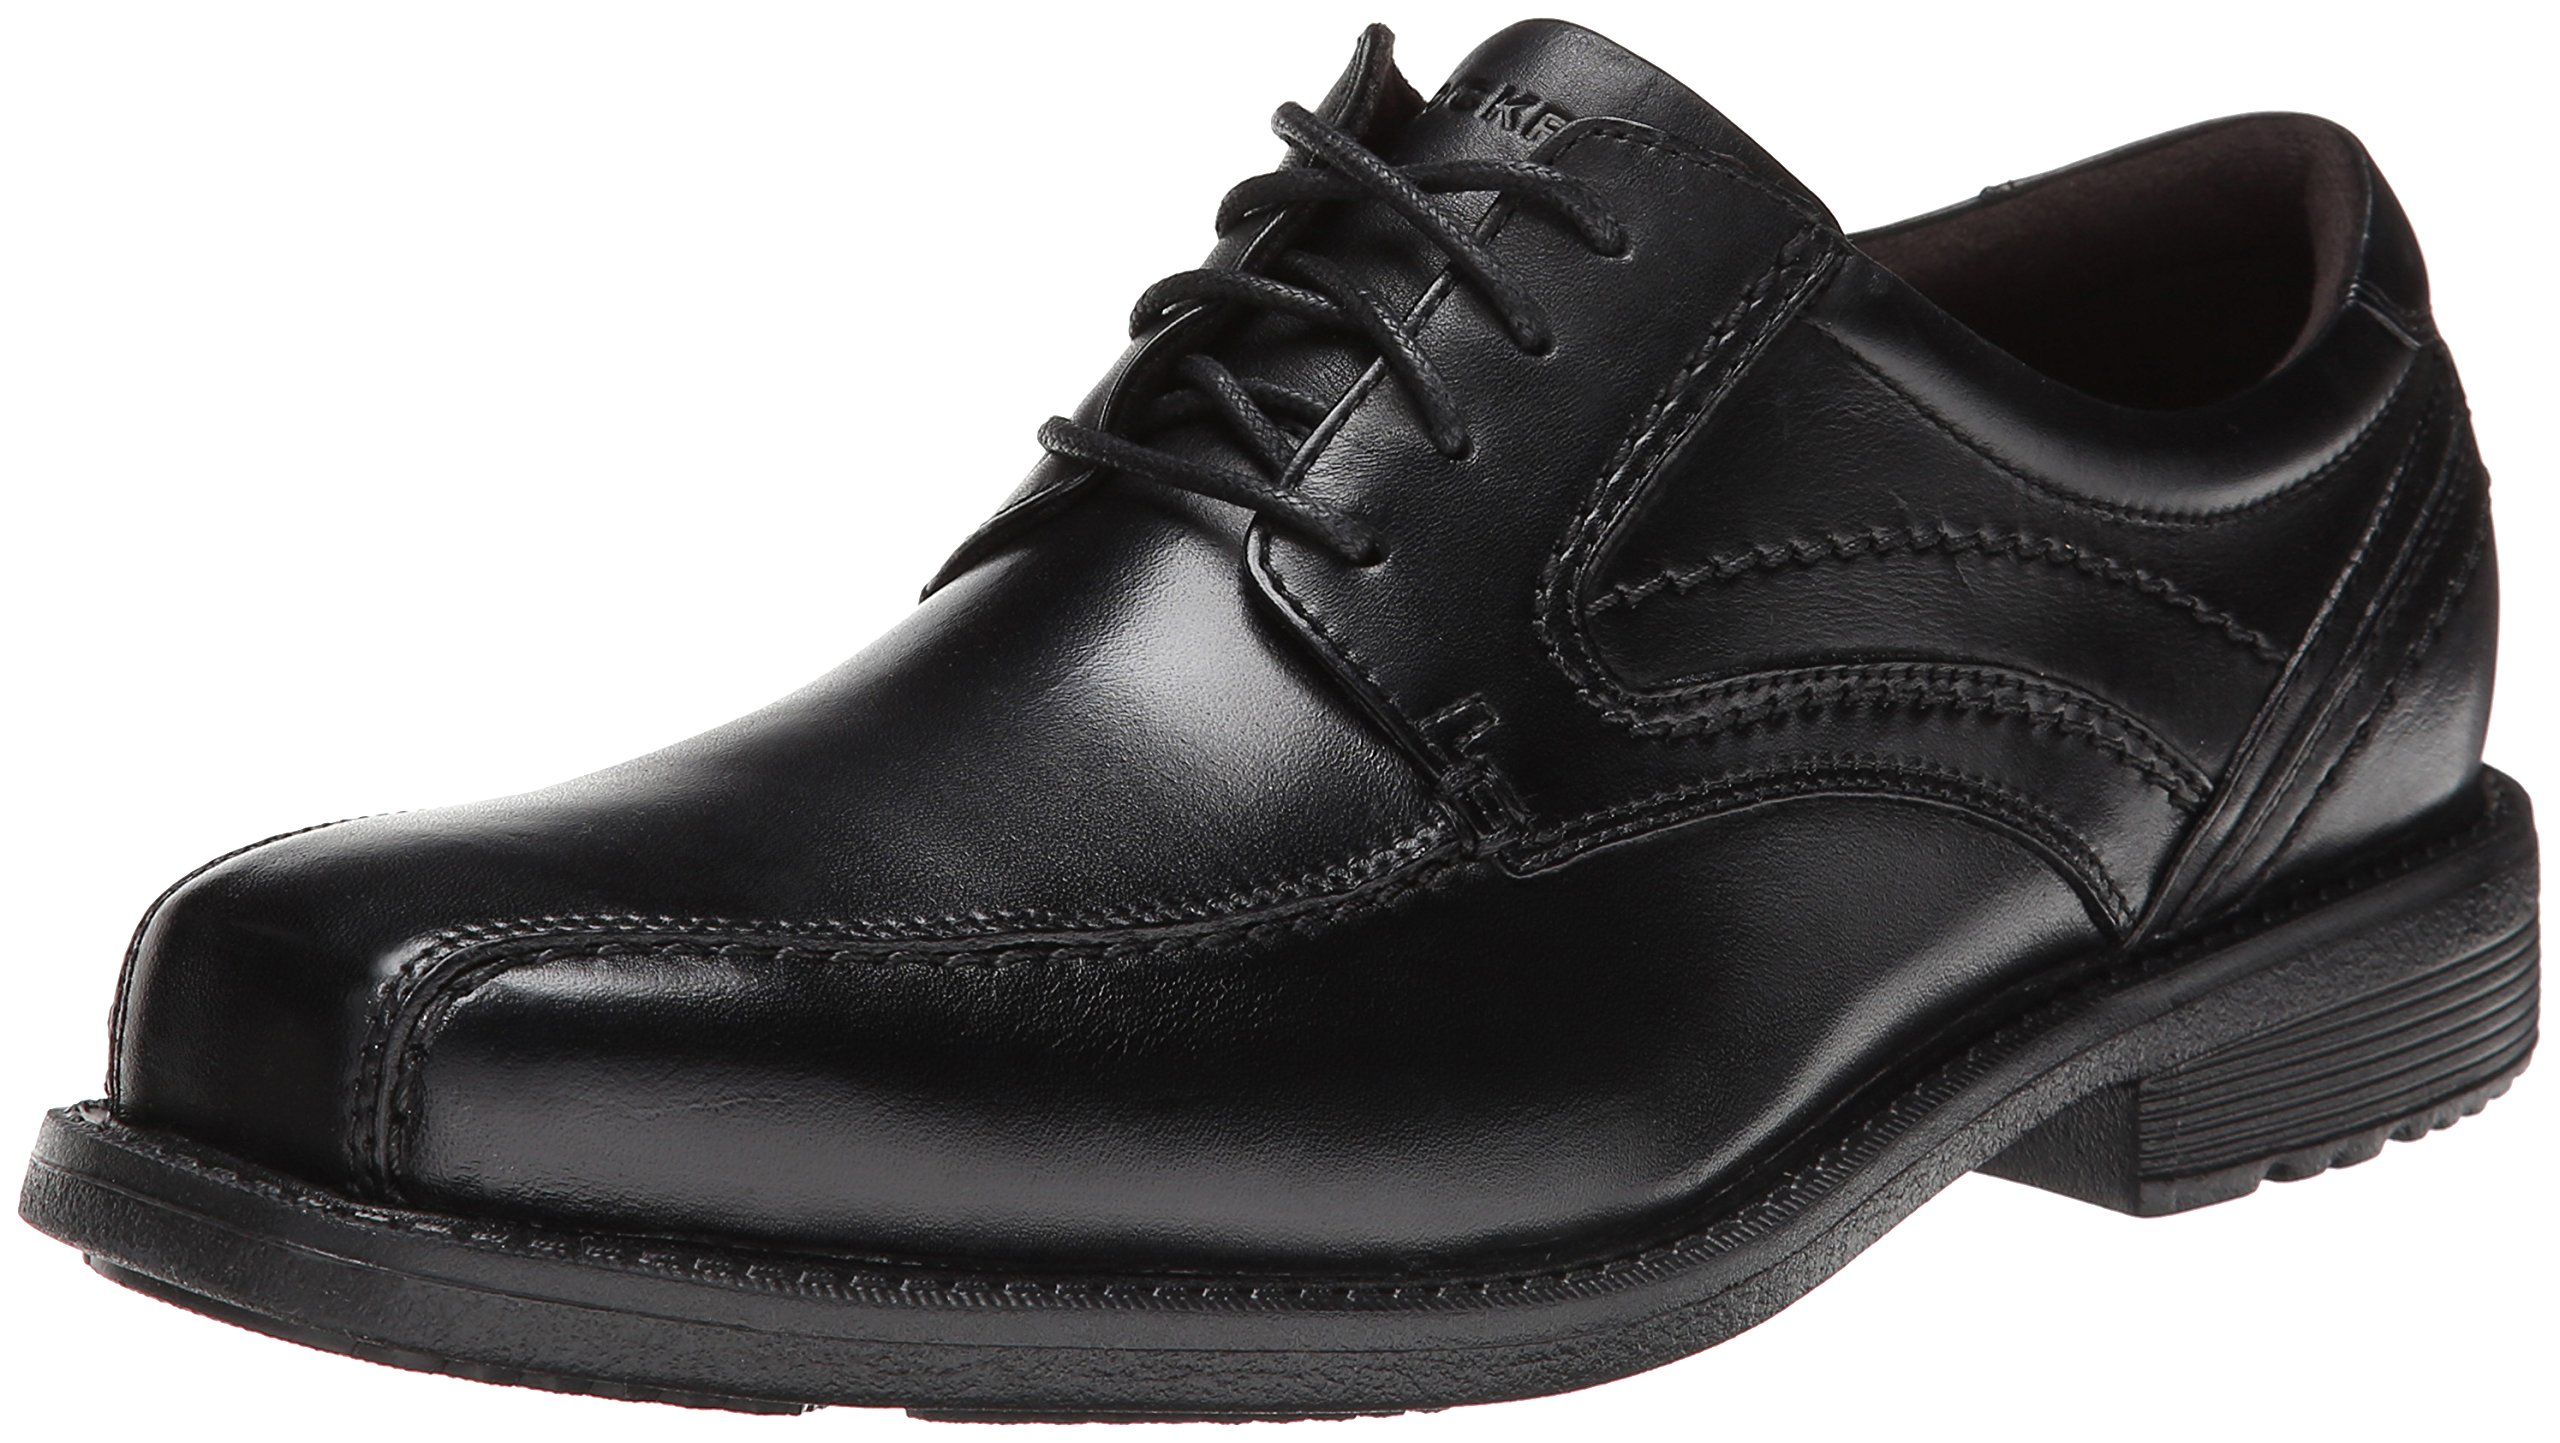 Rockport Men's Style Leader 2 Bike Toe Oxford Black Waxed Calf 9.5 M (D)-9.5  M